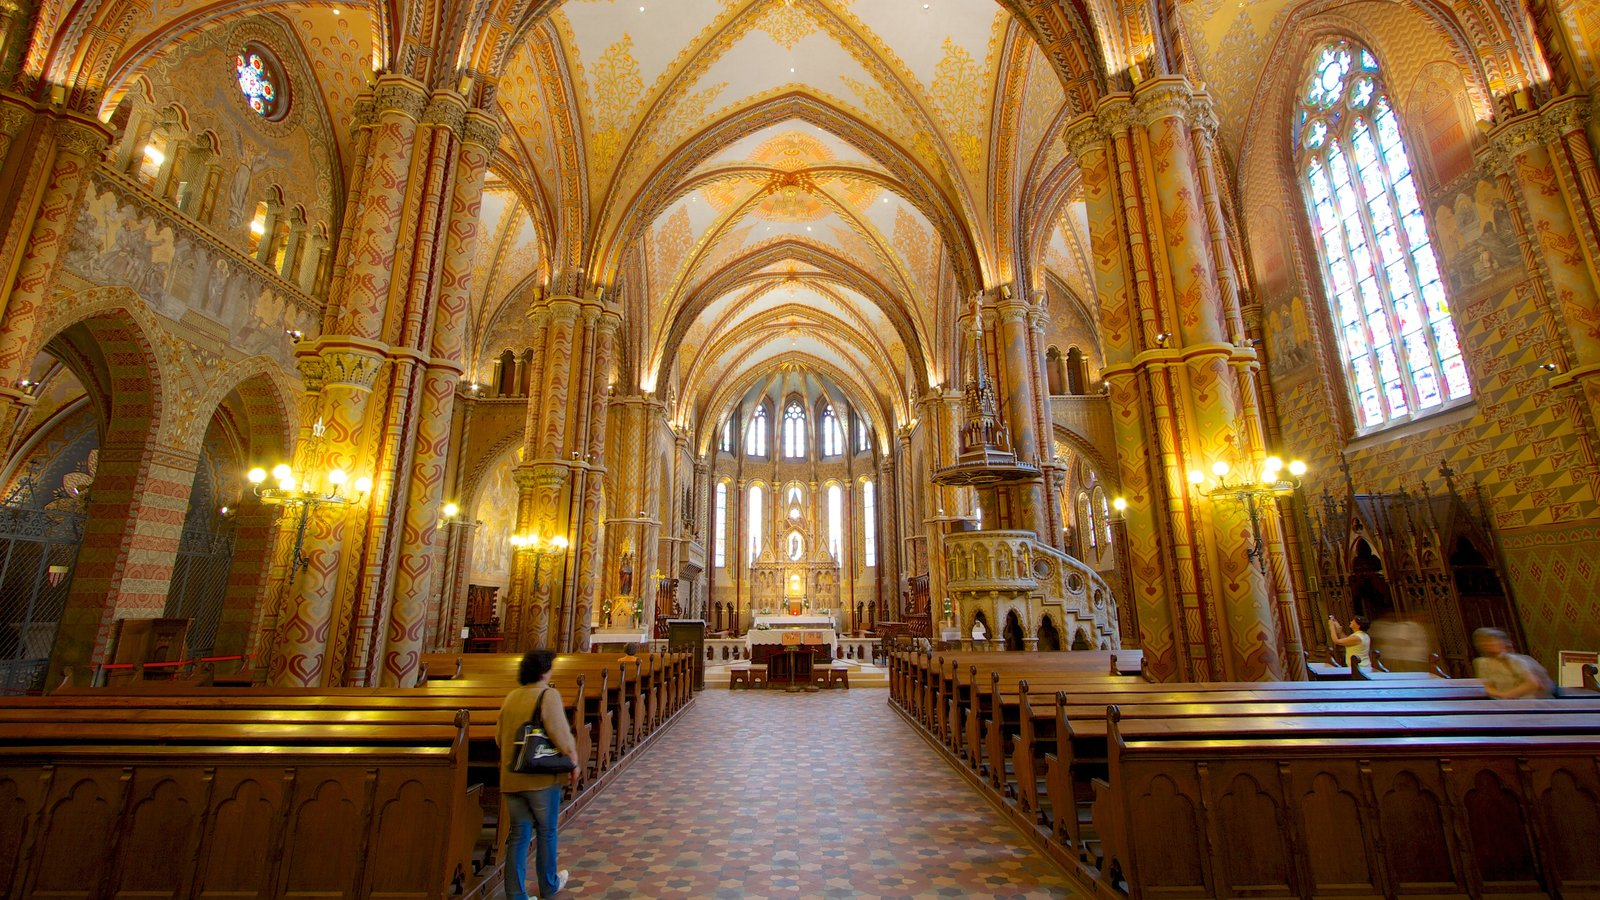 Matthias Church which includes religious aspects, interior views and a church or cathedral